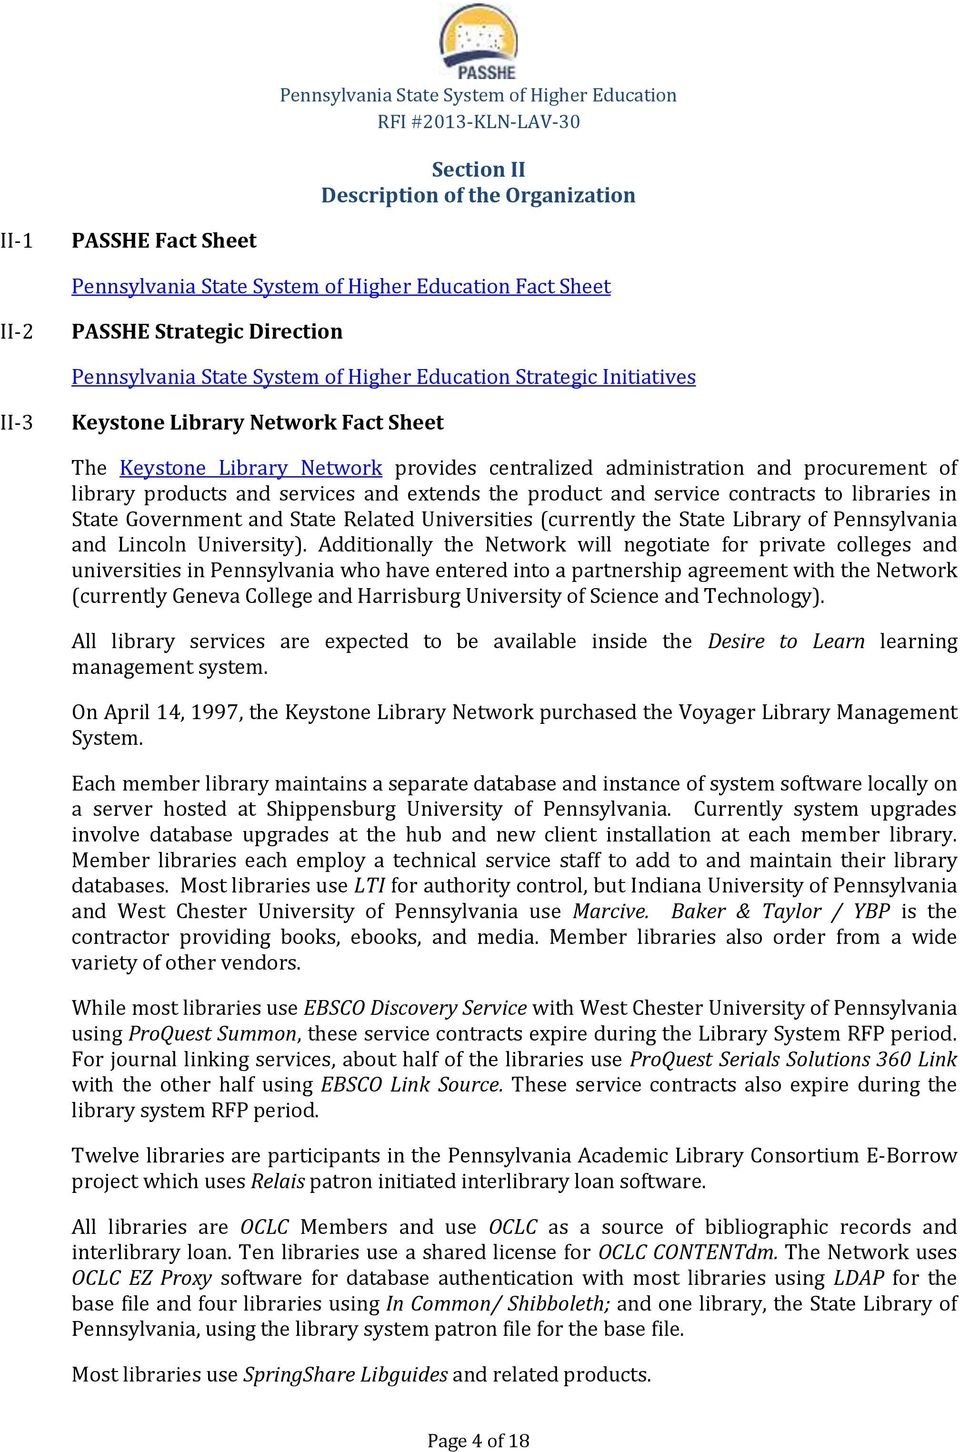 Request for Information (RFI) for an INTEGRATED LIBRARY